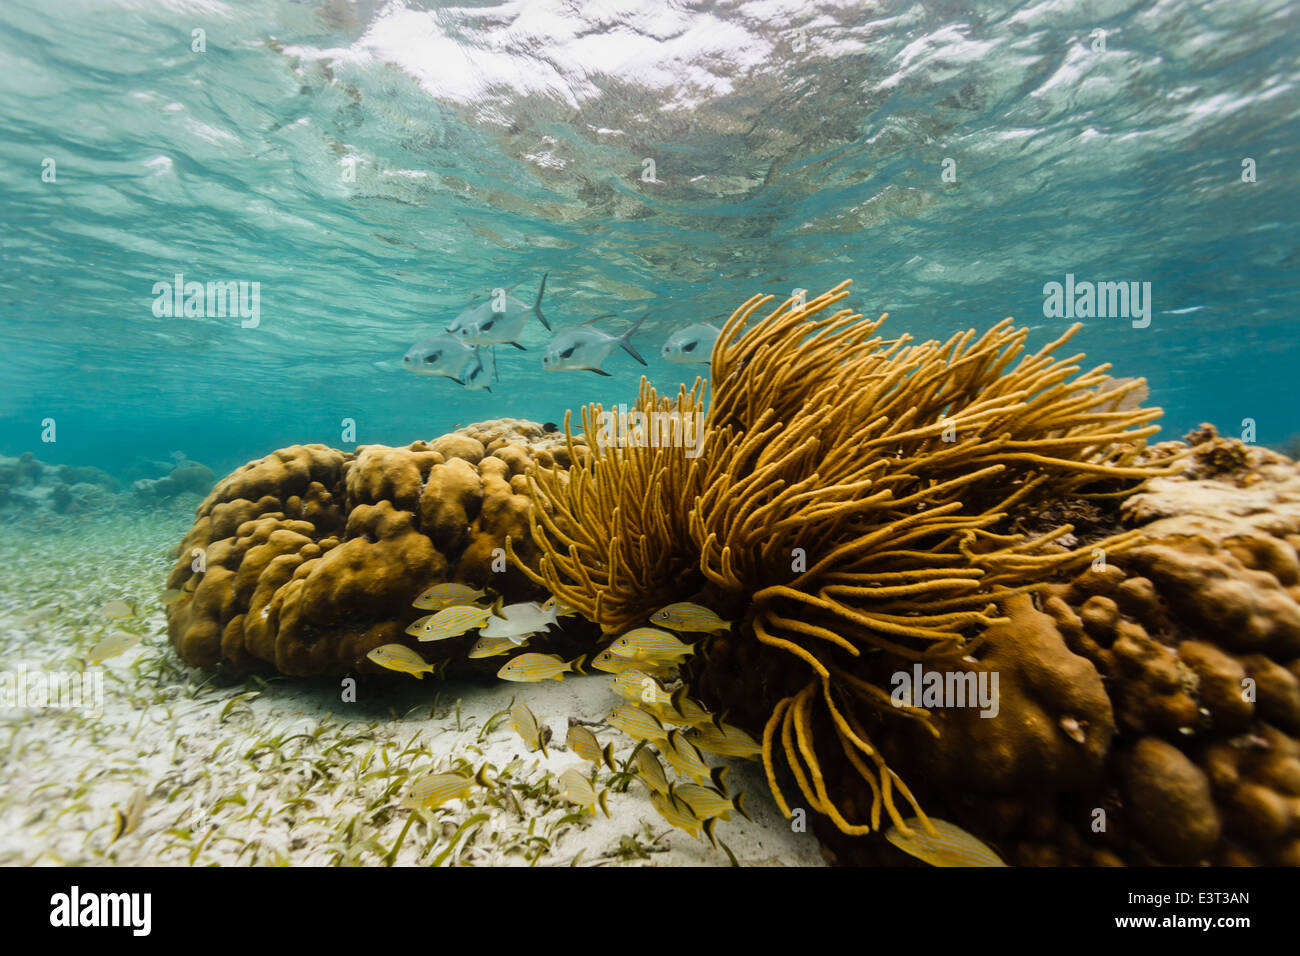 School of big silver permit fish with black tails on coral reef approach school of small fish hiding under branching - Stock Image